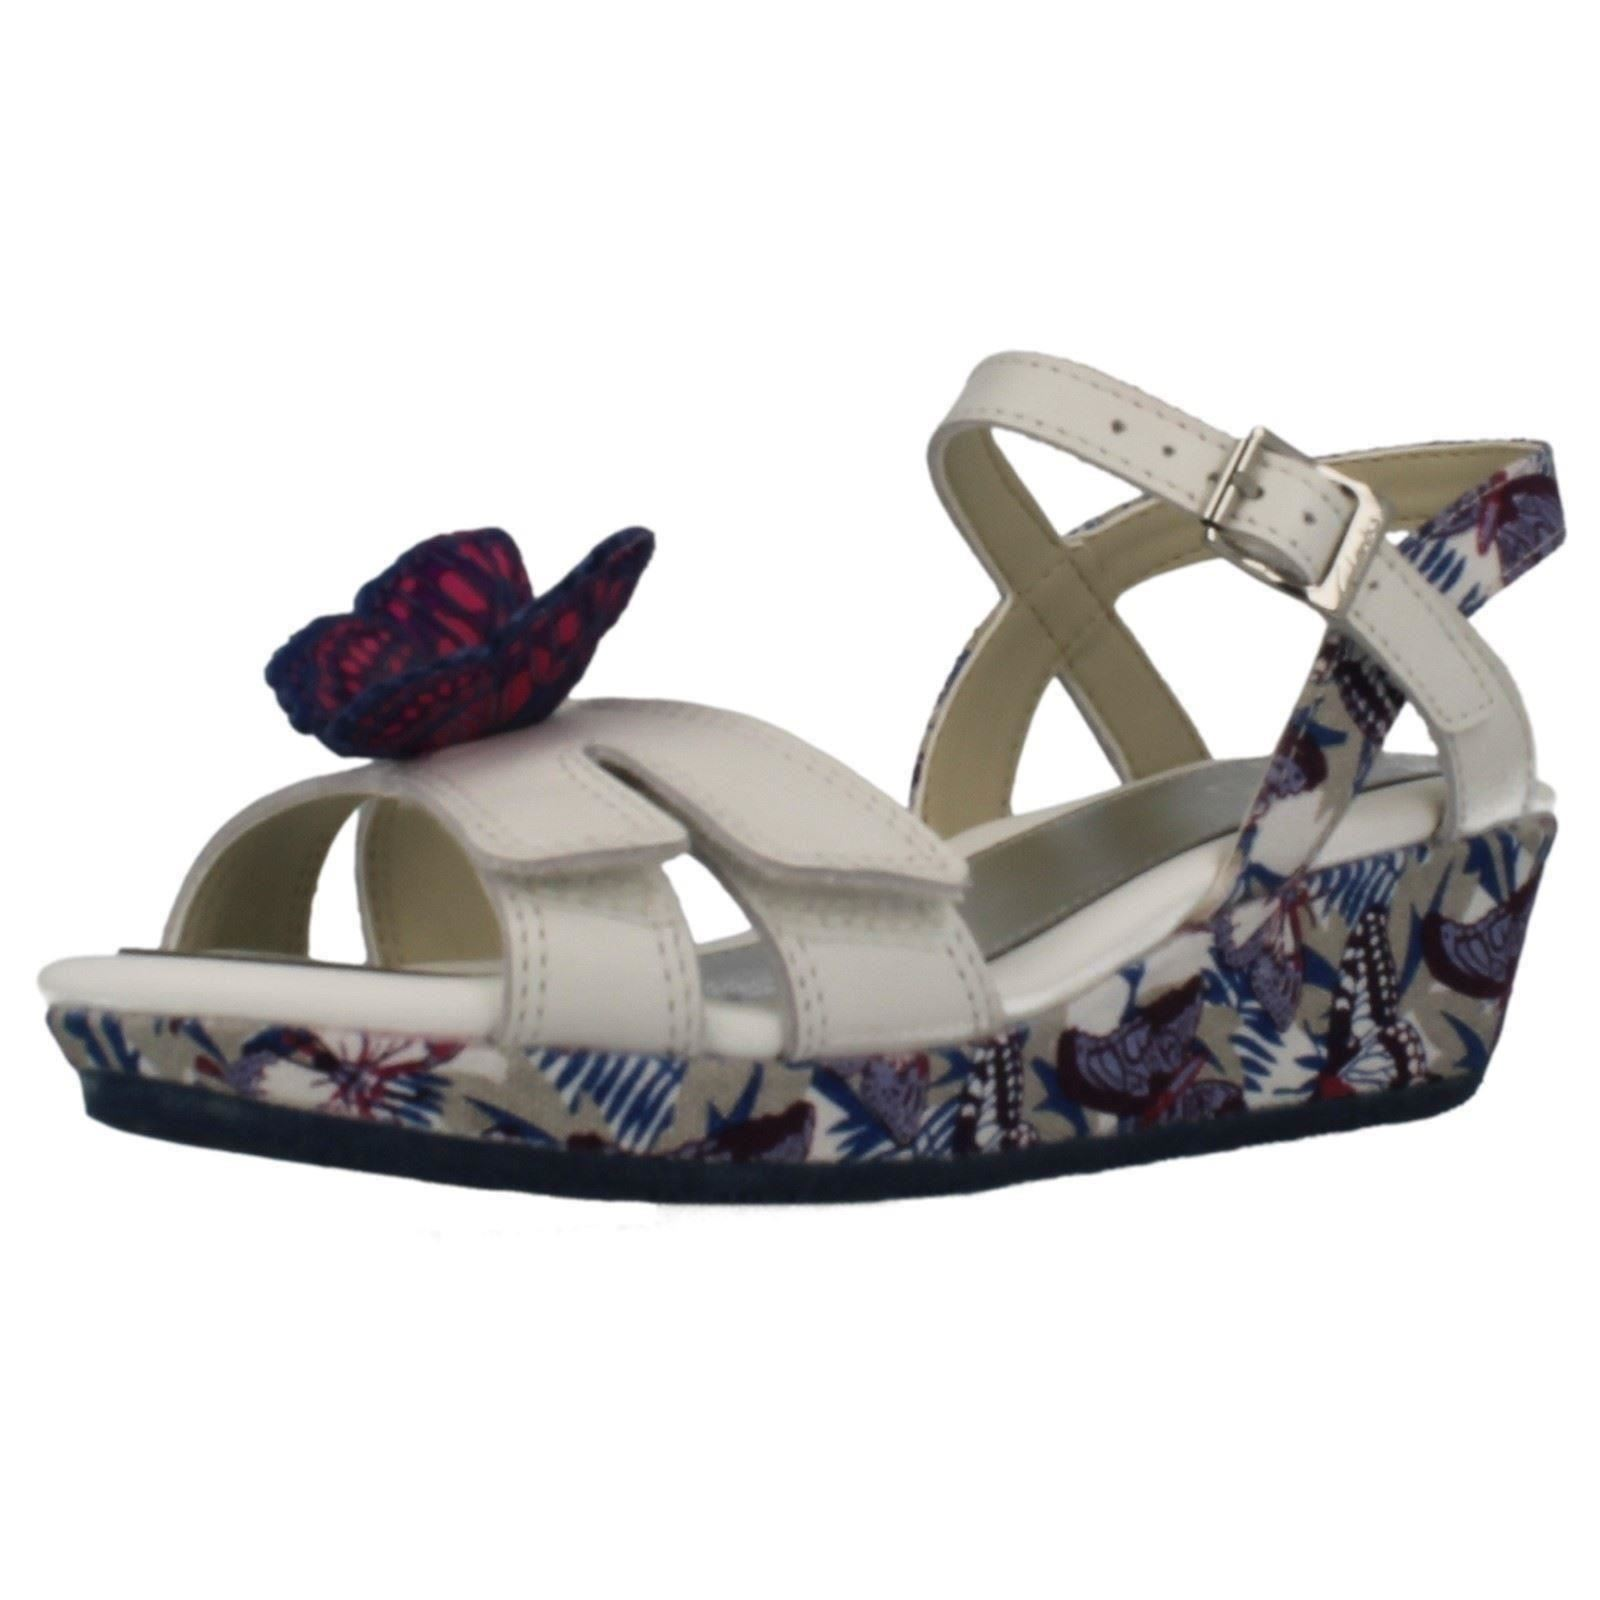 Girls Clarks Butterfly Print Wedge Sandals 'Harpy Fly'